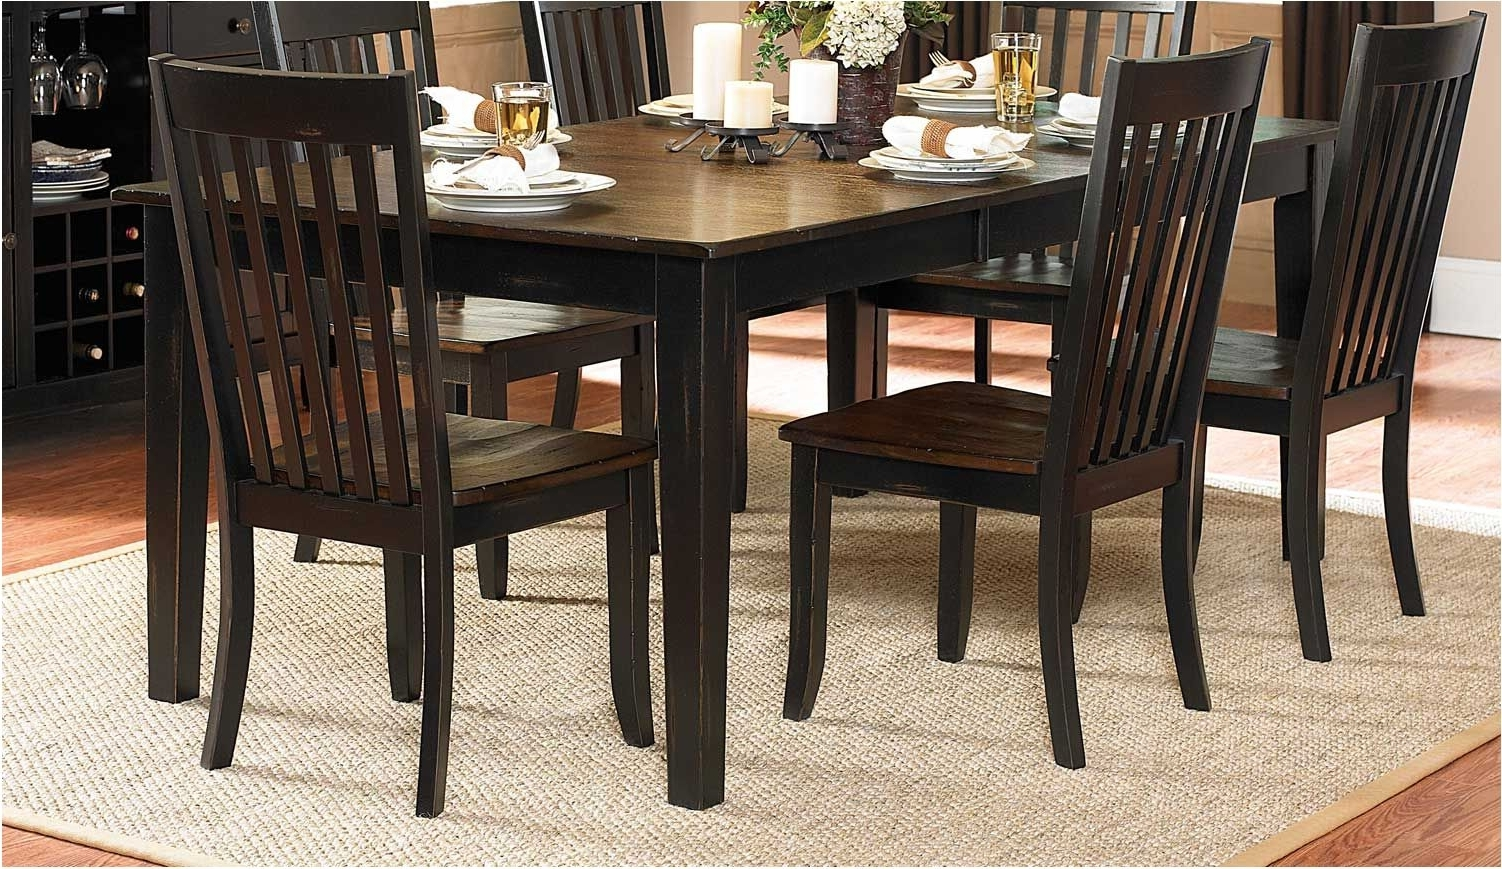 Great Kitchen Large Wooden Dining Table Black Leather Seat Bench Pertaining To Favorite Dark Brown Wood Dining Tables (View 3 of 25)